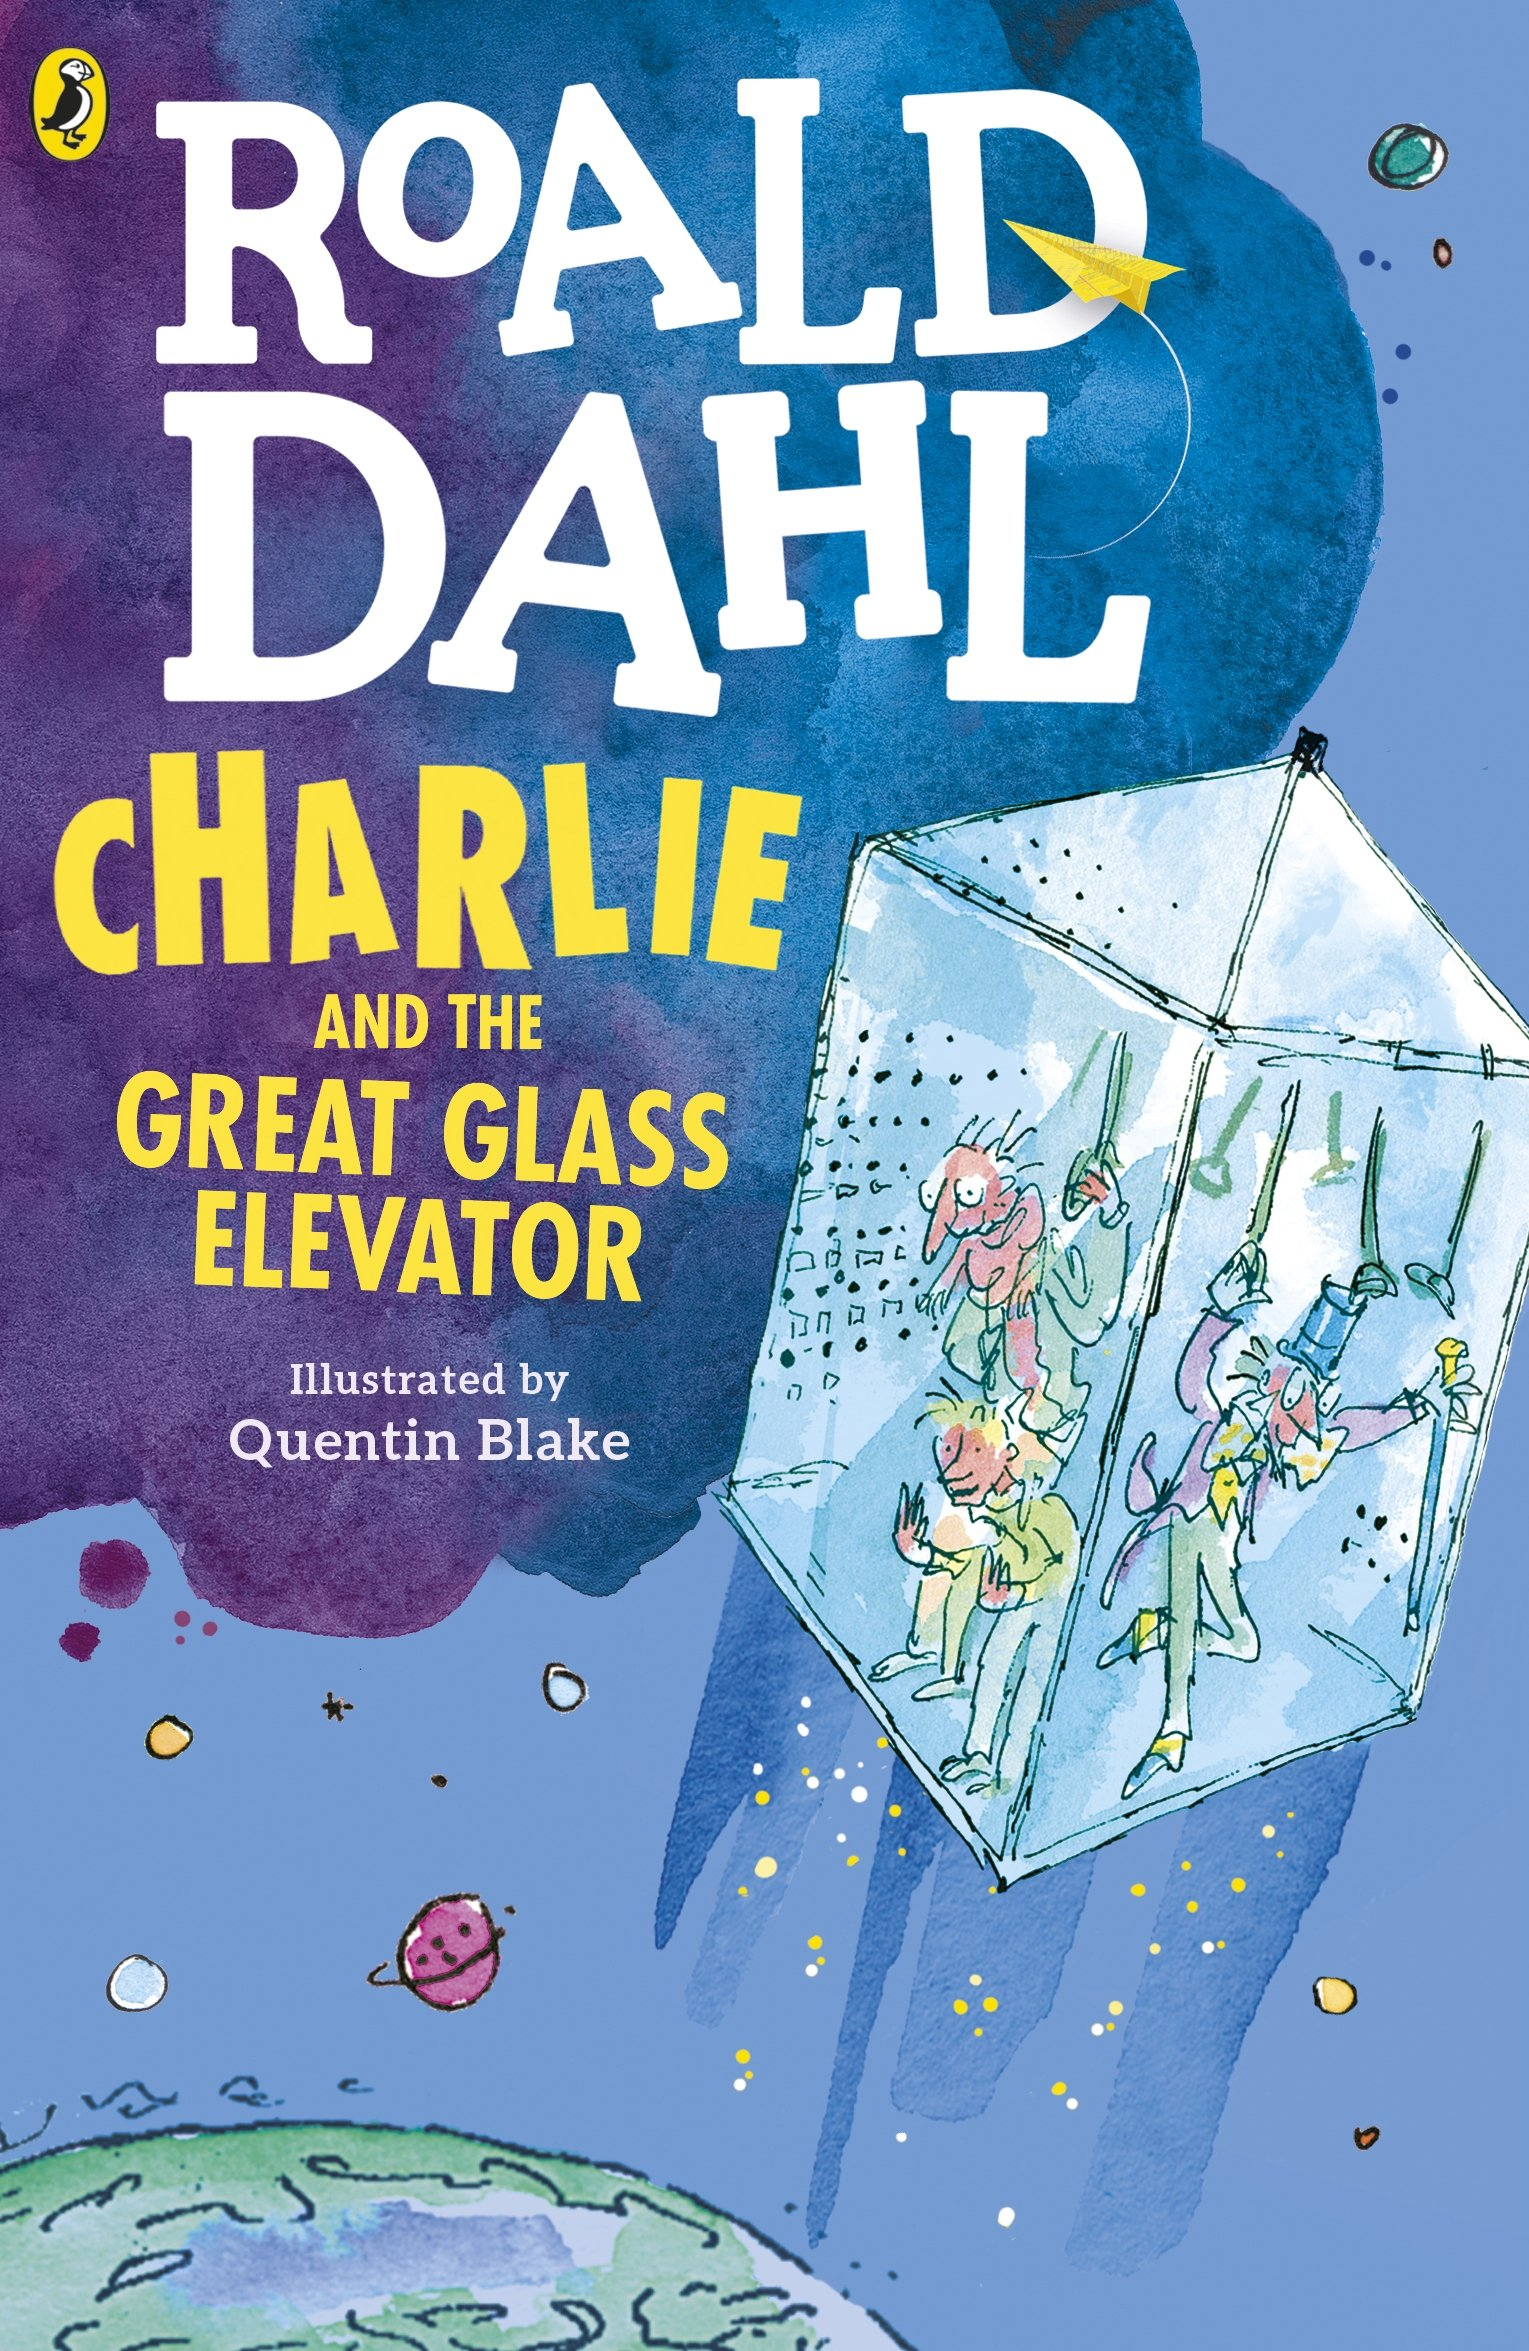 Charlie and the Great Glass Elevator (Dahl Fiction): Amazon.co.uk ...